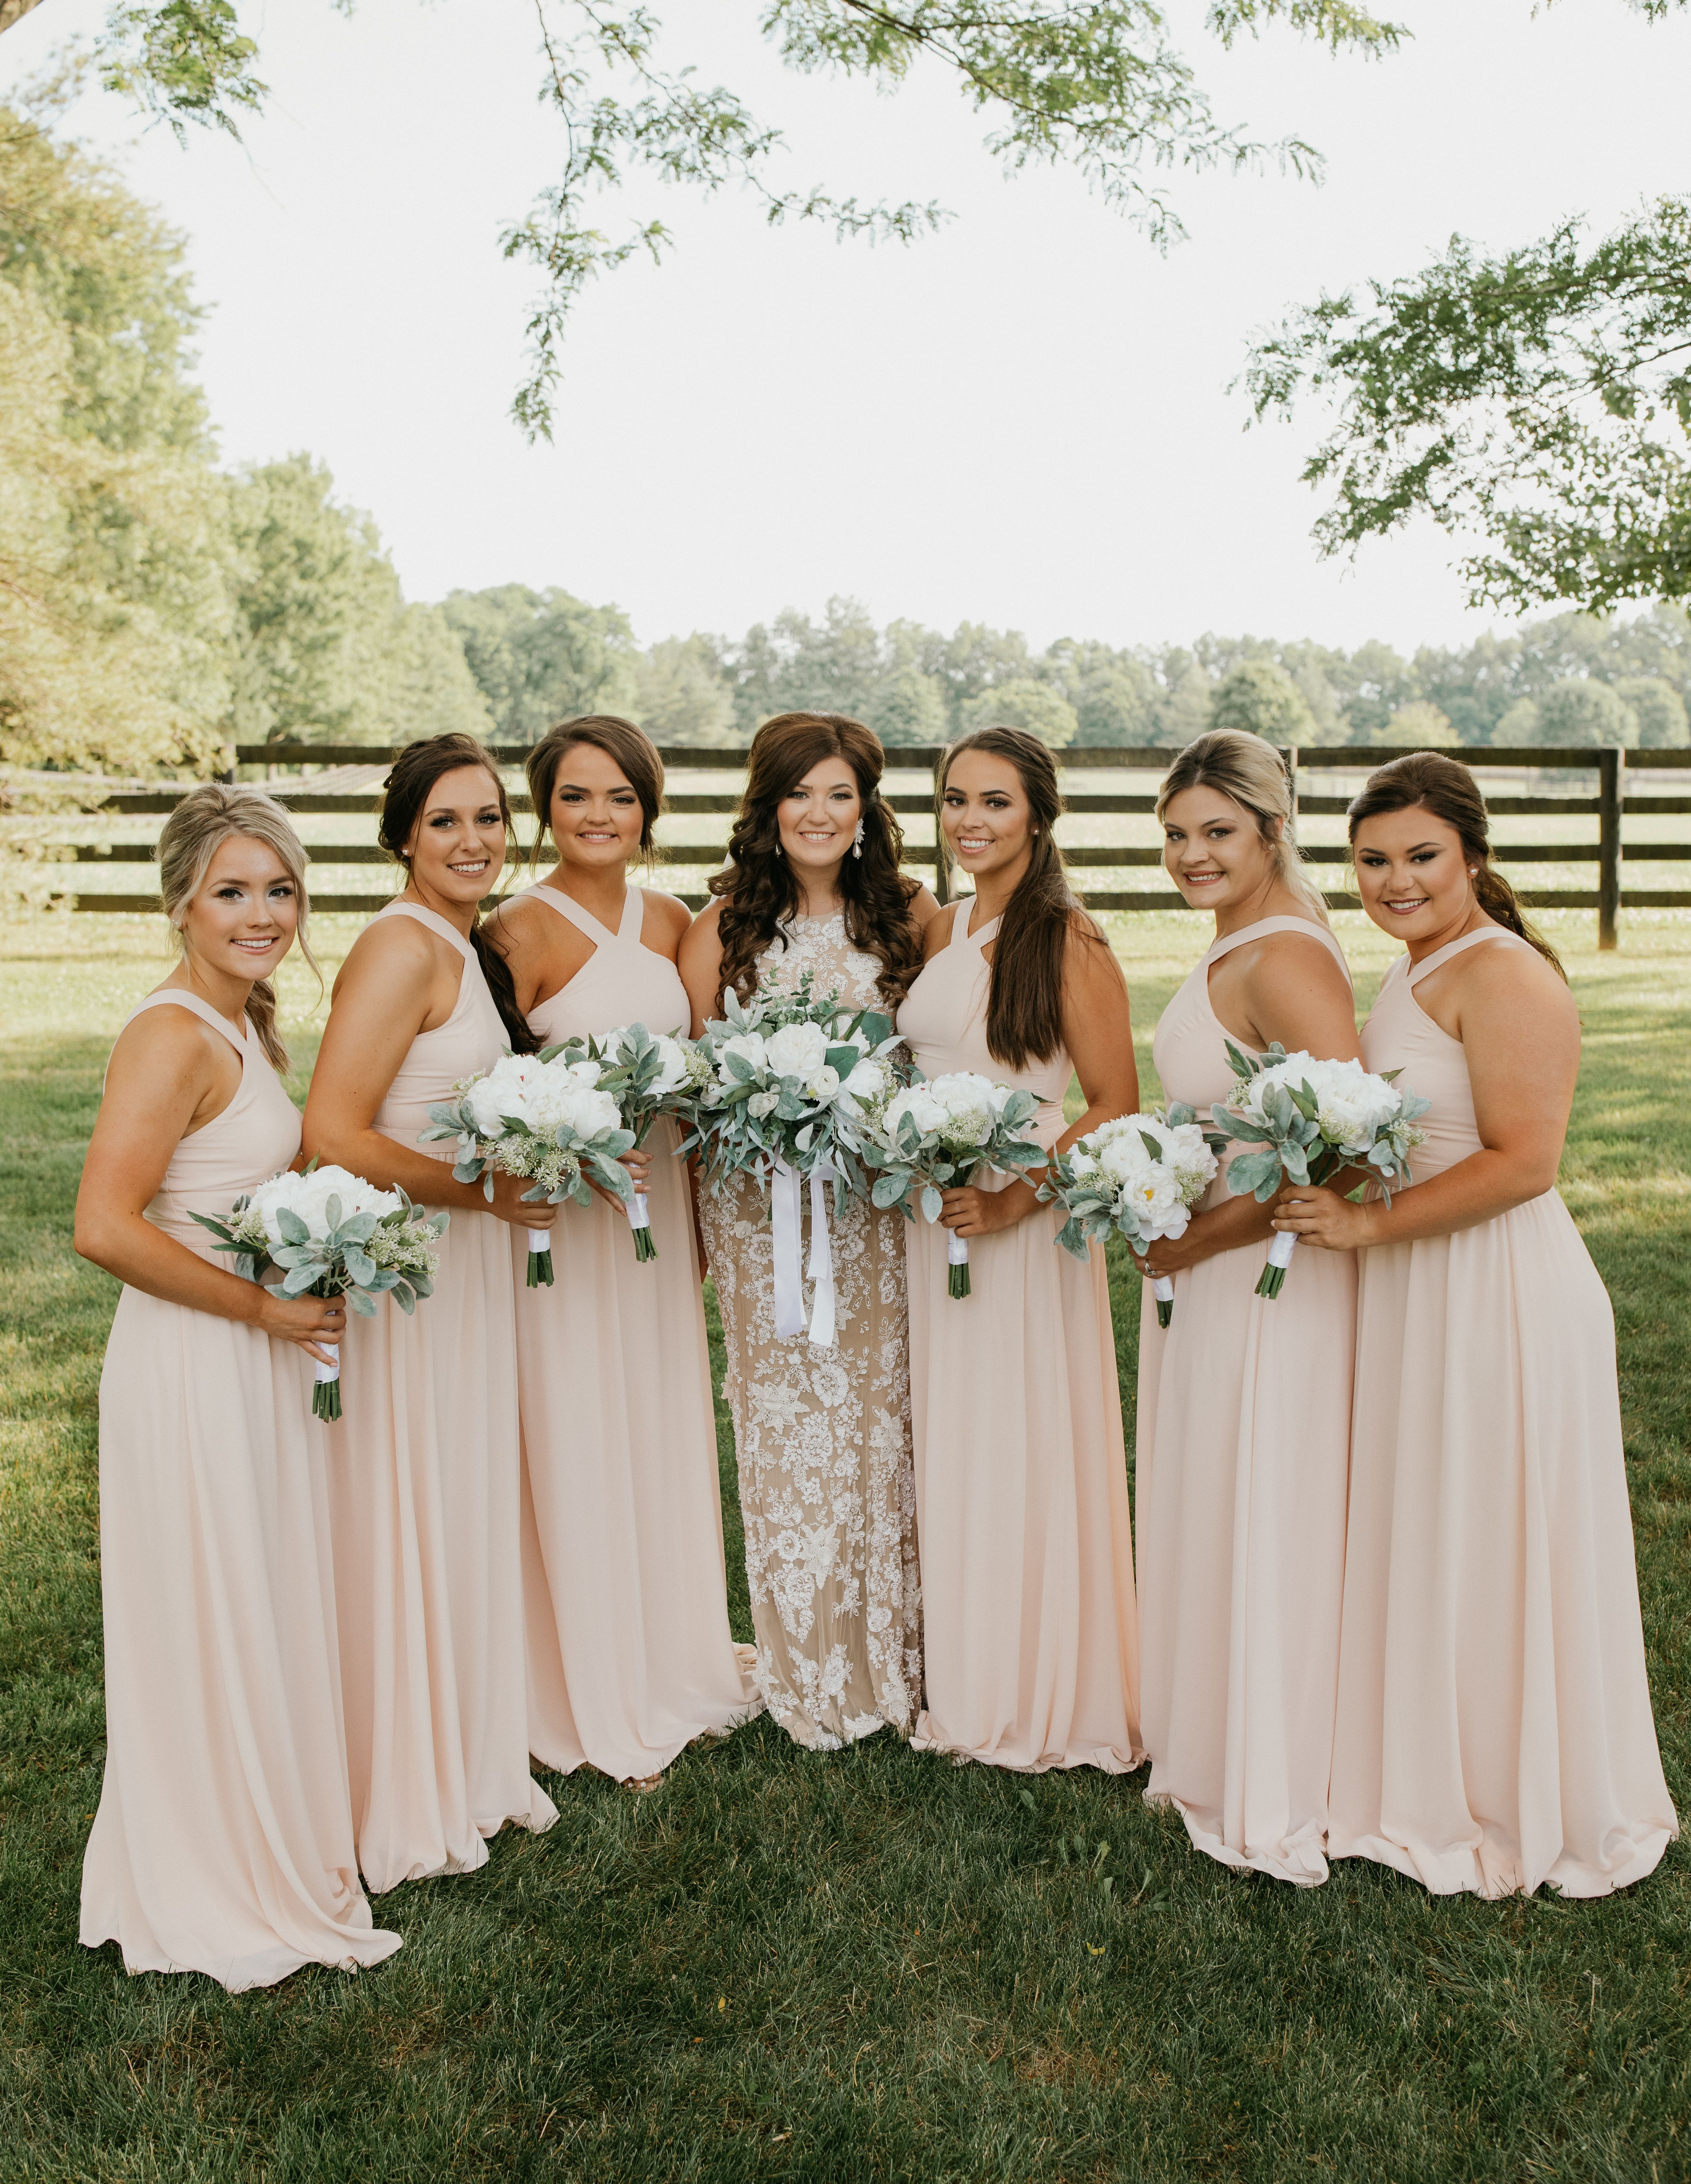 Kentucky Wedding Photographer Pink Bridesmaids Dresses Bridemaids Weddings In 2020 Bridesmaid Pink Bridesmaid Dress Bridesmaid Dresses